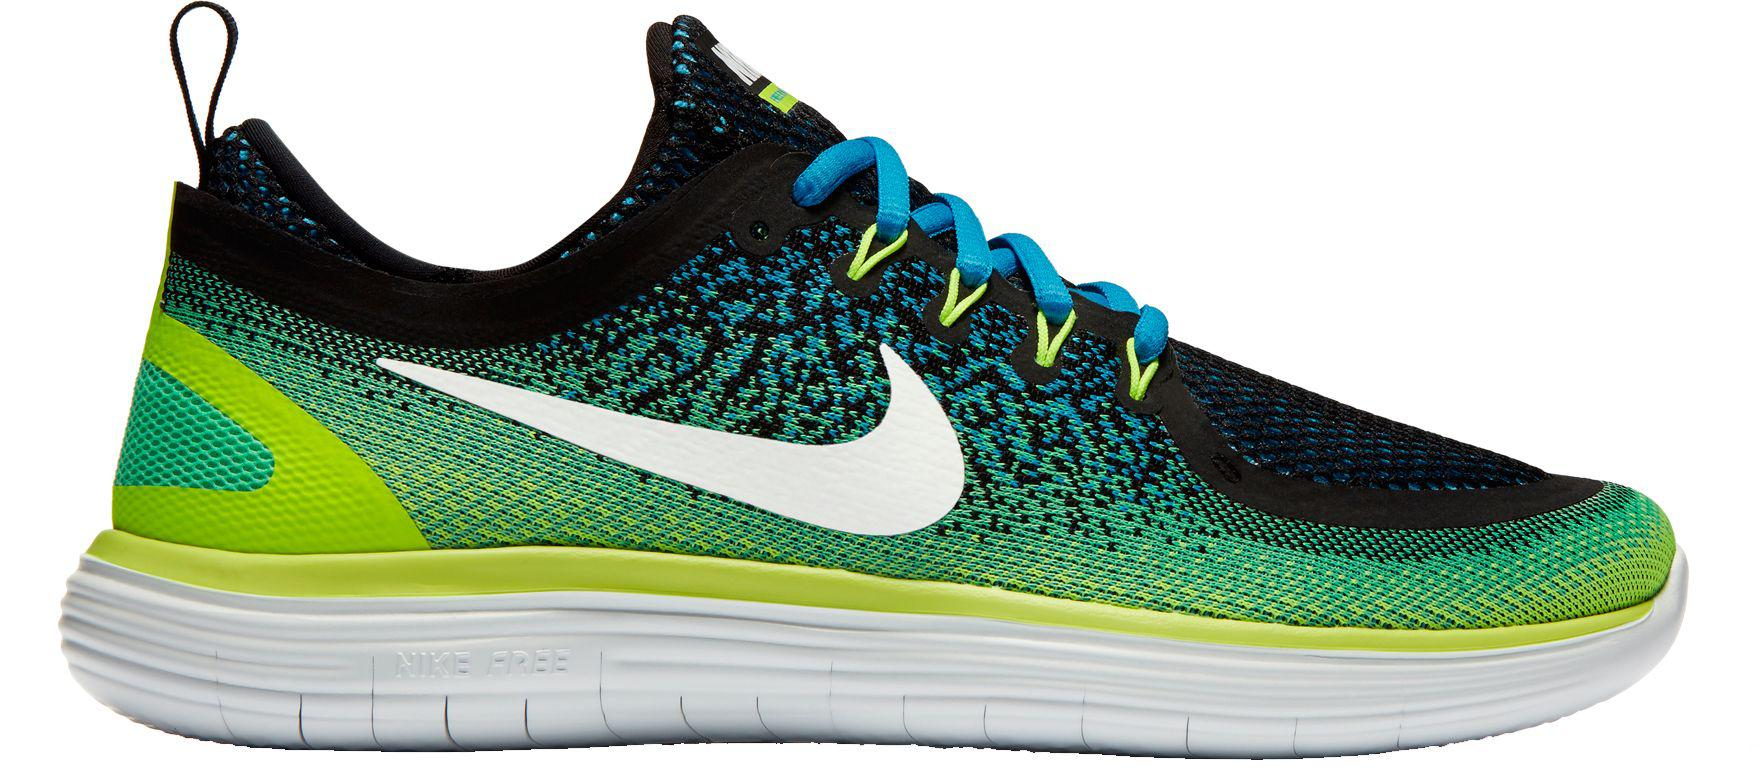 677538efadbf Lyst - Nike Free Rn Distance 2 Running Shoes in Green for Men